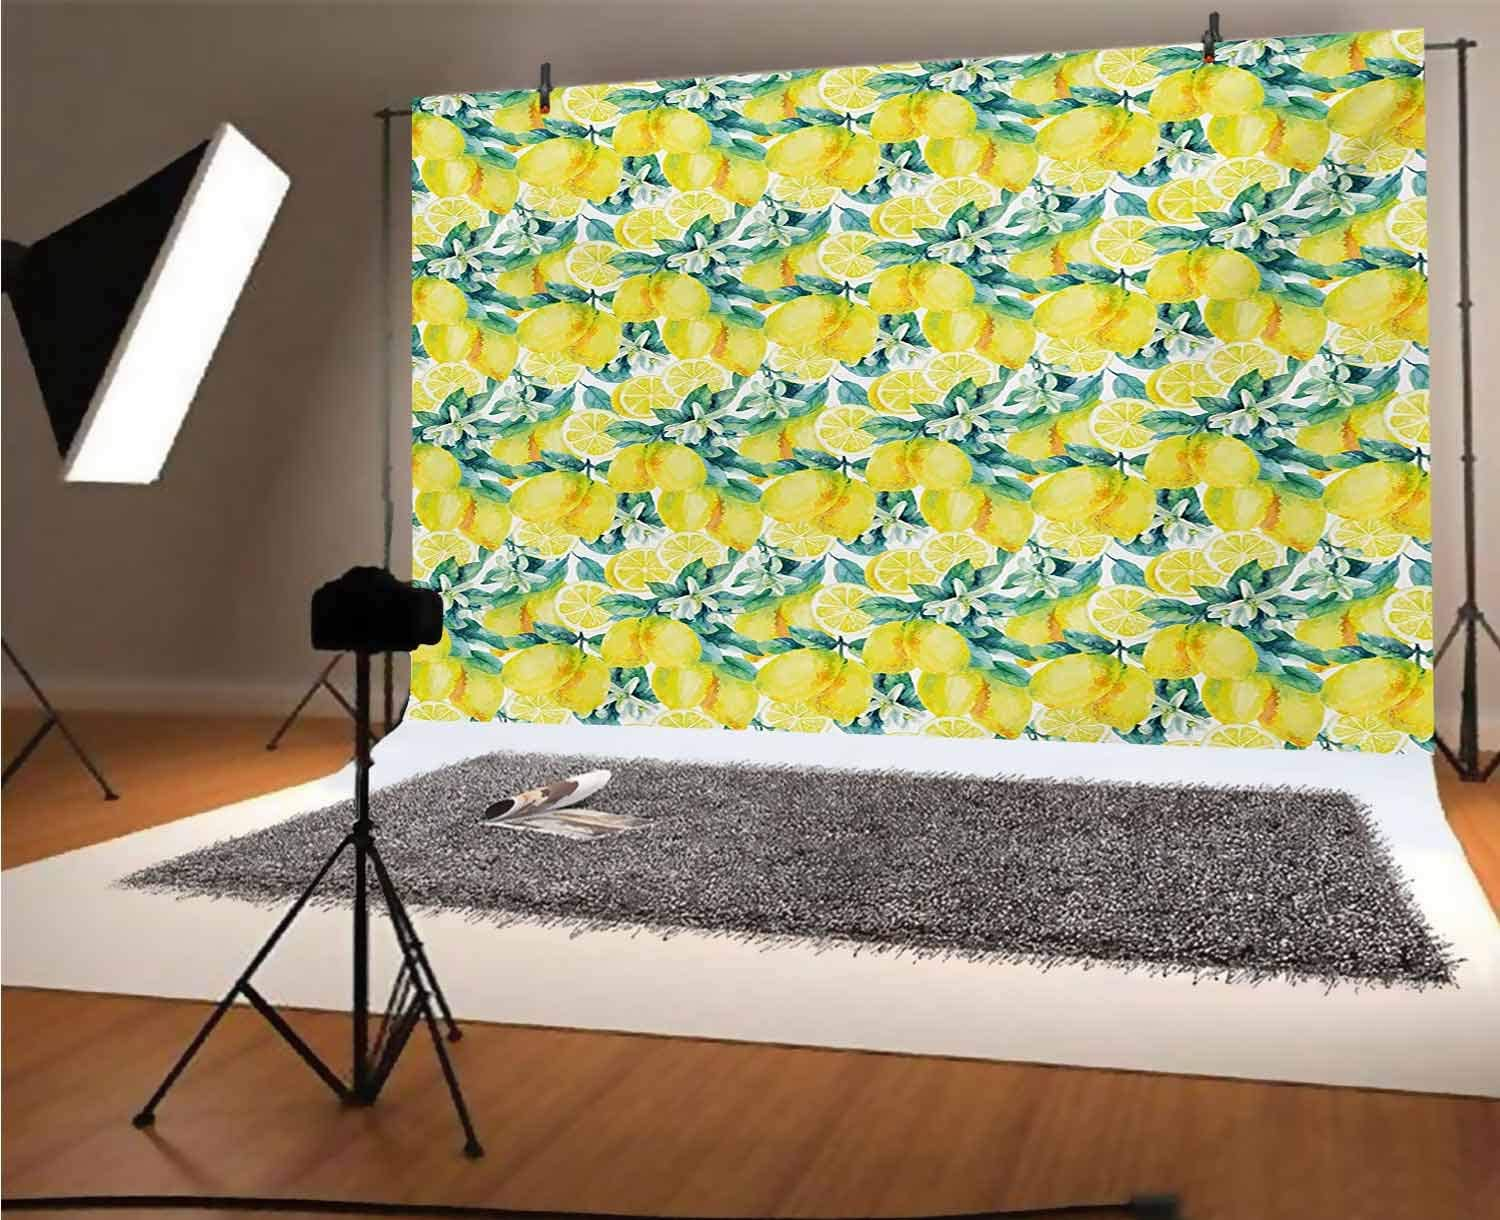 Modern 12x10 FT Vinyl Photo Backdrops,Watercolor Paintbrush Stylized Lemons with Murky Hazy Effects Artful Image Background for Selfie Birthday Party Pictures Photo Booth Shoot